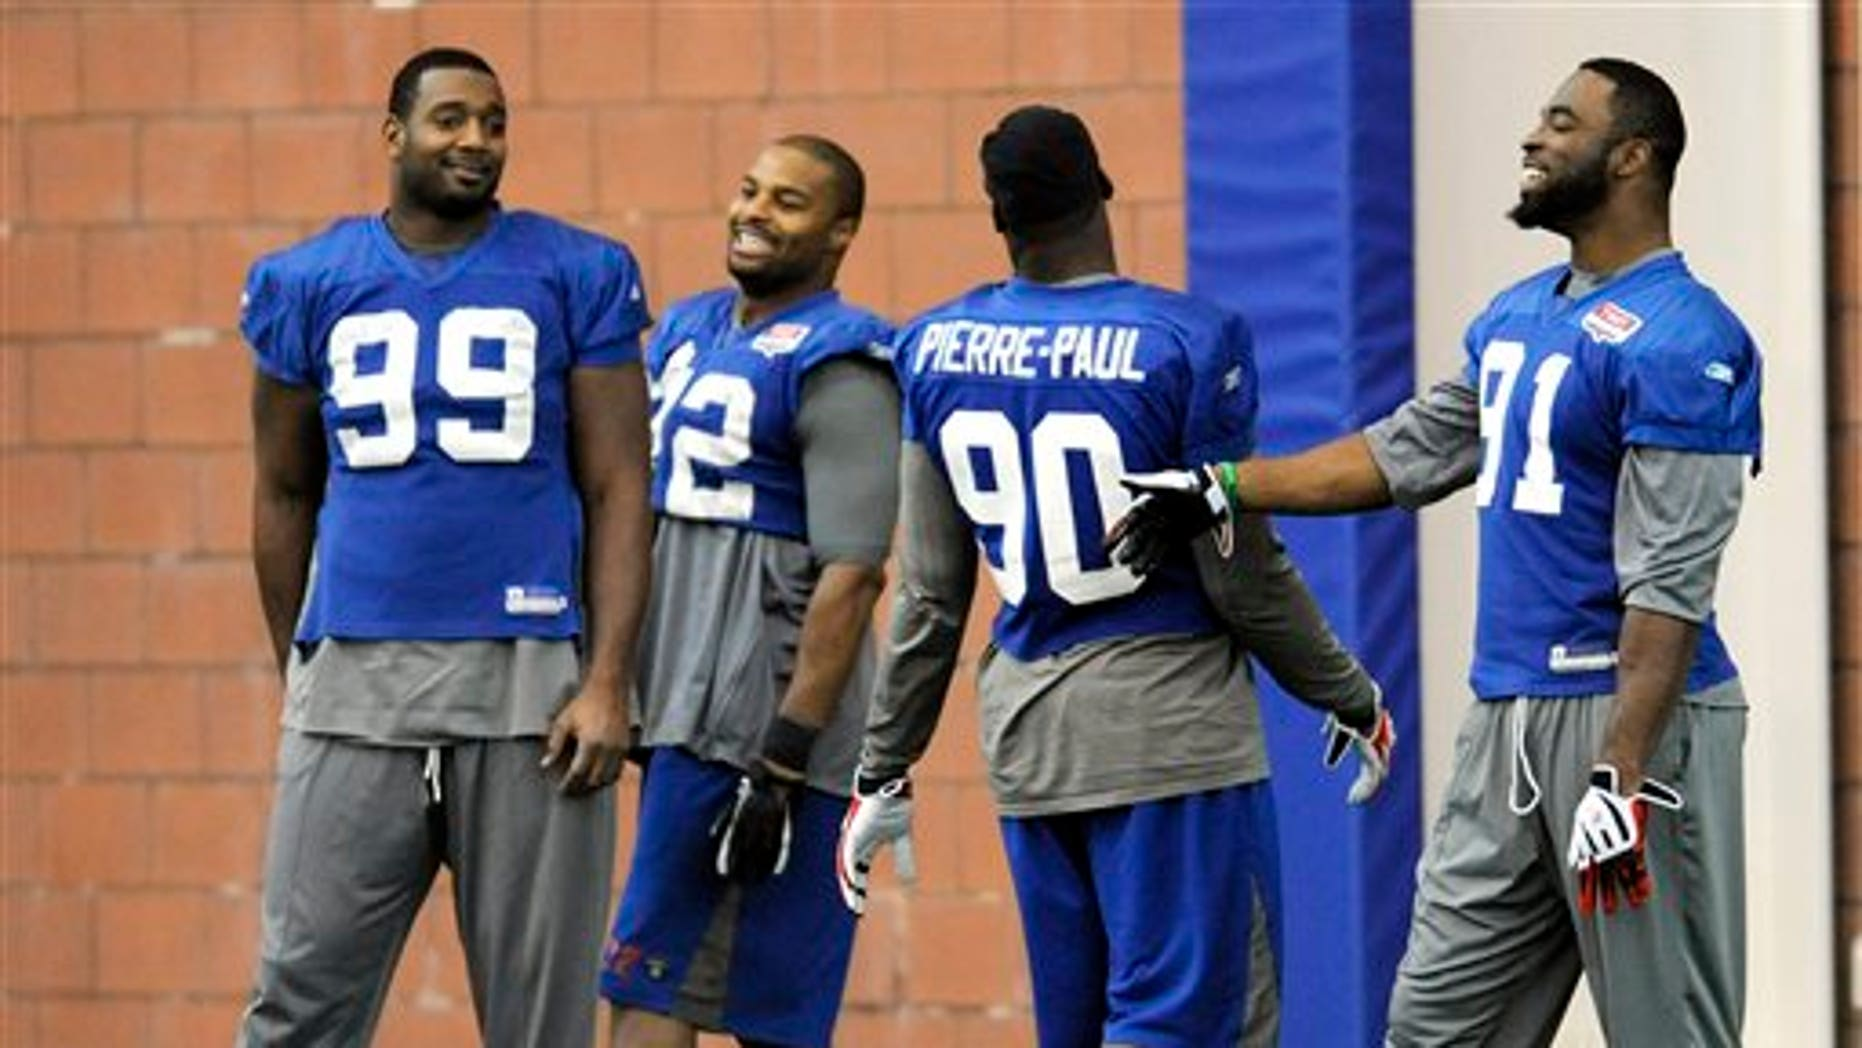 Jan. 19: New York Giants -- Chris Canty (99), Osi Umenyiora (72), Jason Pierre-Paul (90) and Justin Tuck  share a laugh during NFL football practice in East Rutherford, New Jersey.